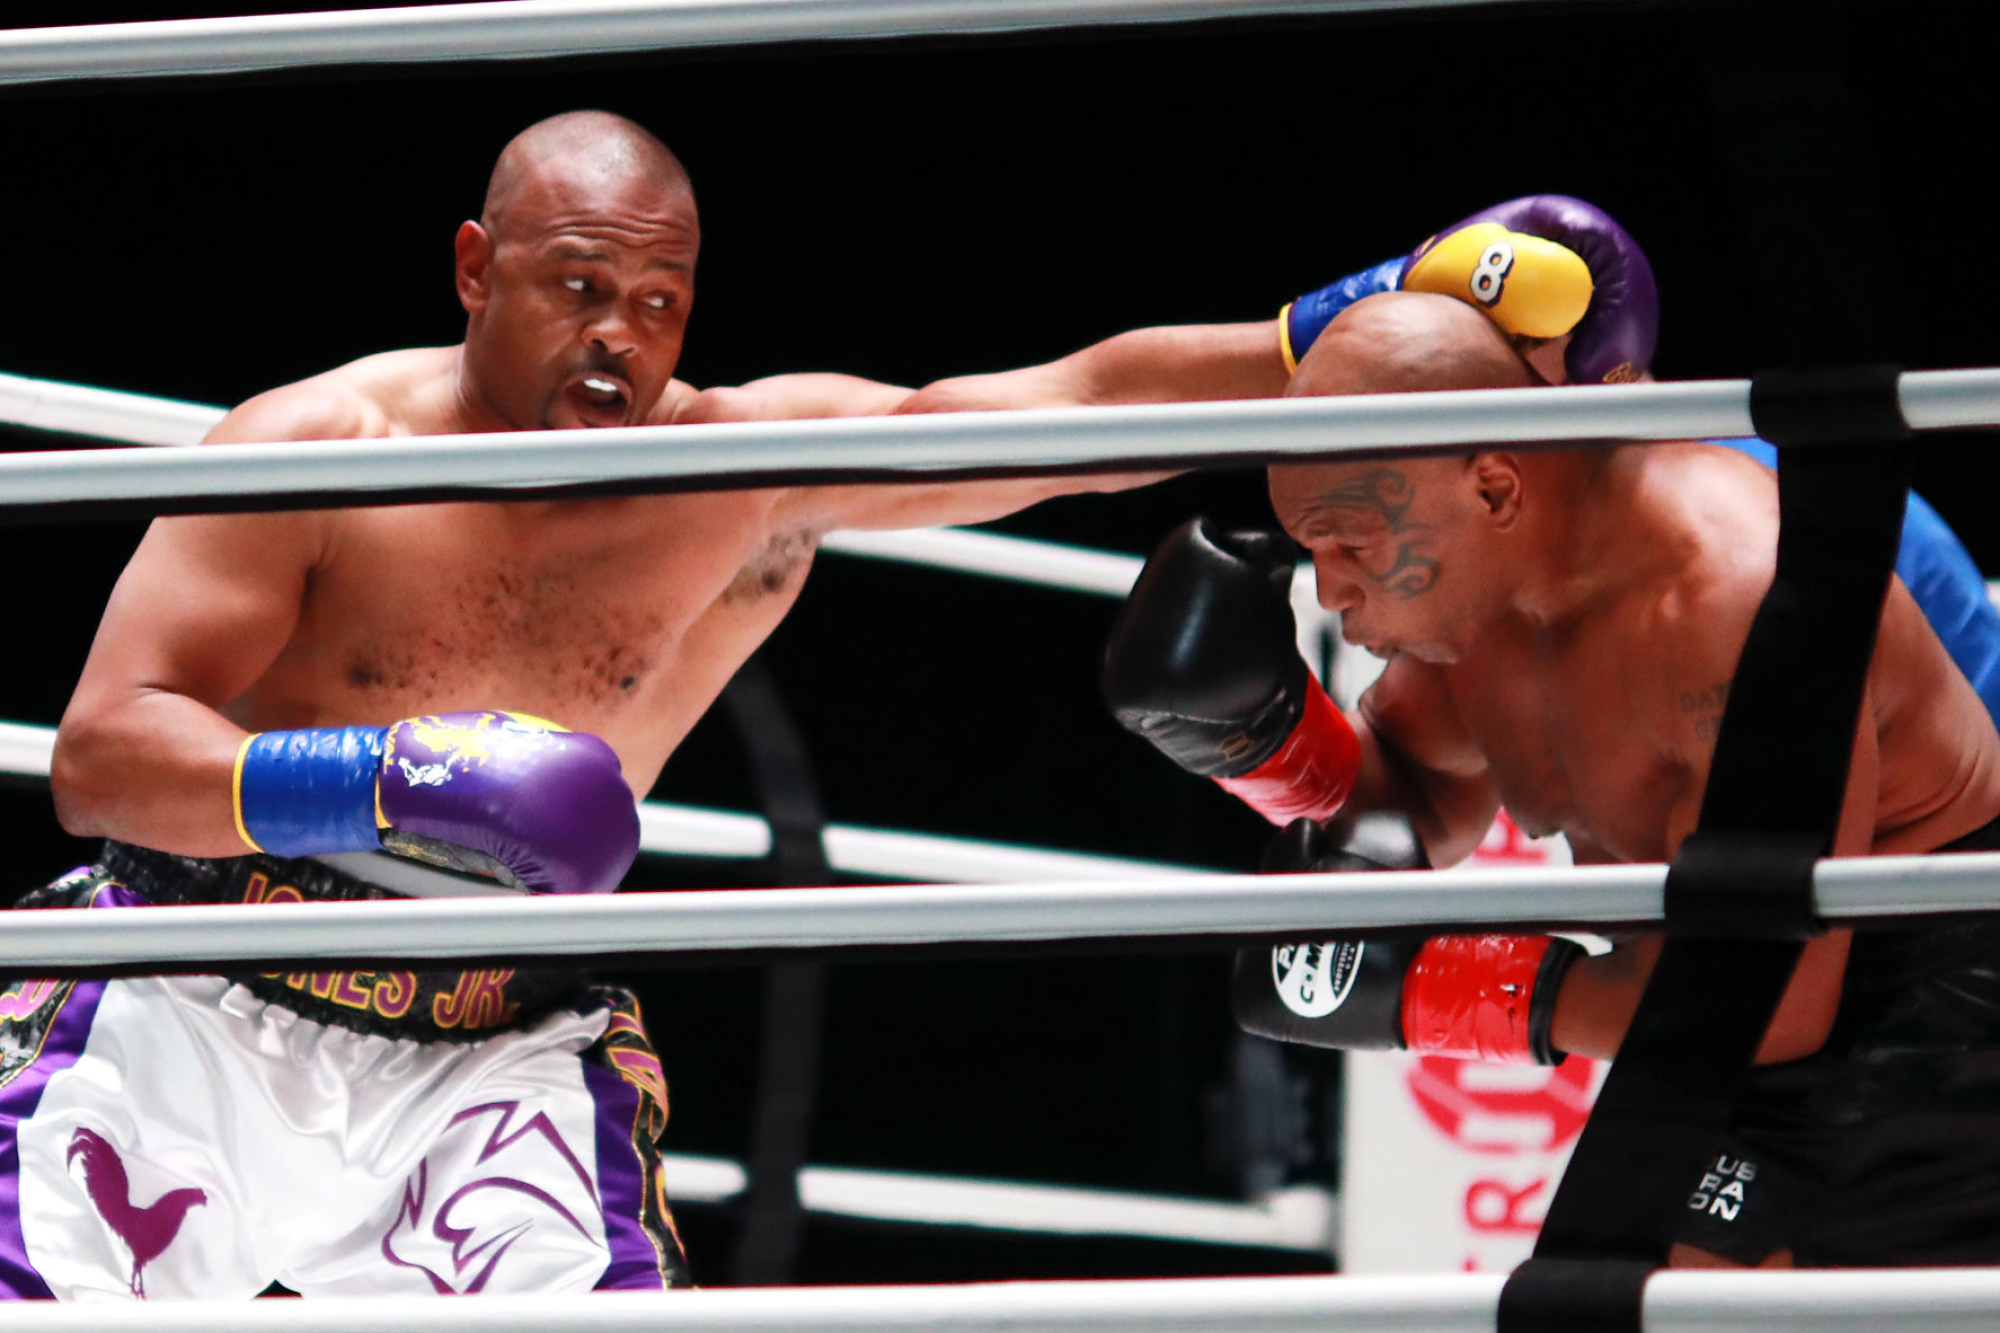 Roy Jones Jr., left, throws a punch at Mike Tyson during their exhibition fight at Staples Center.